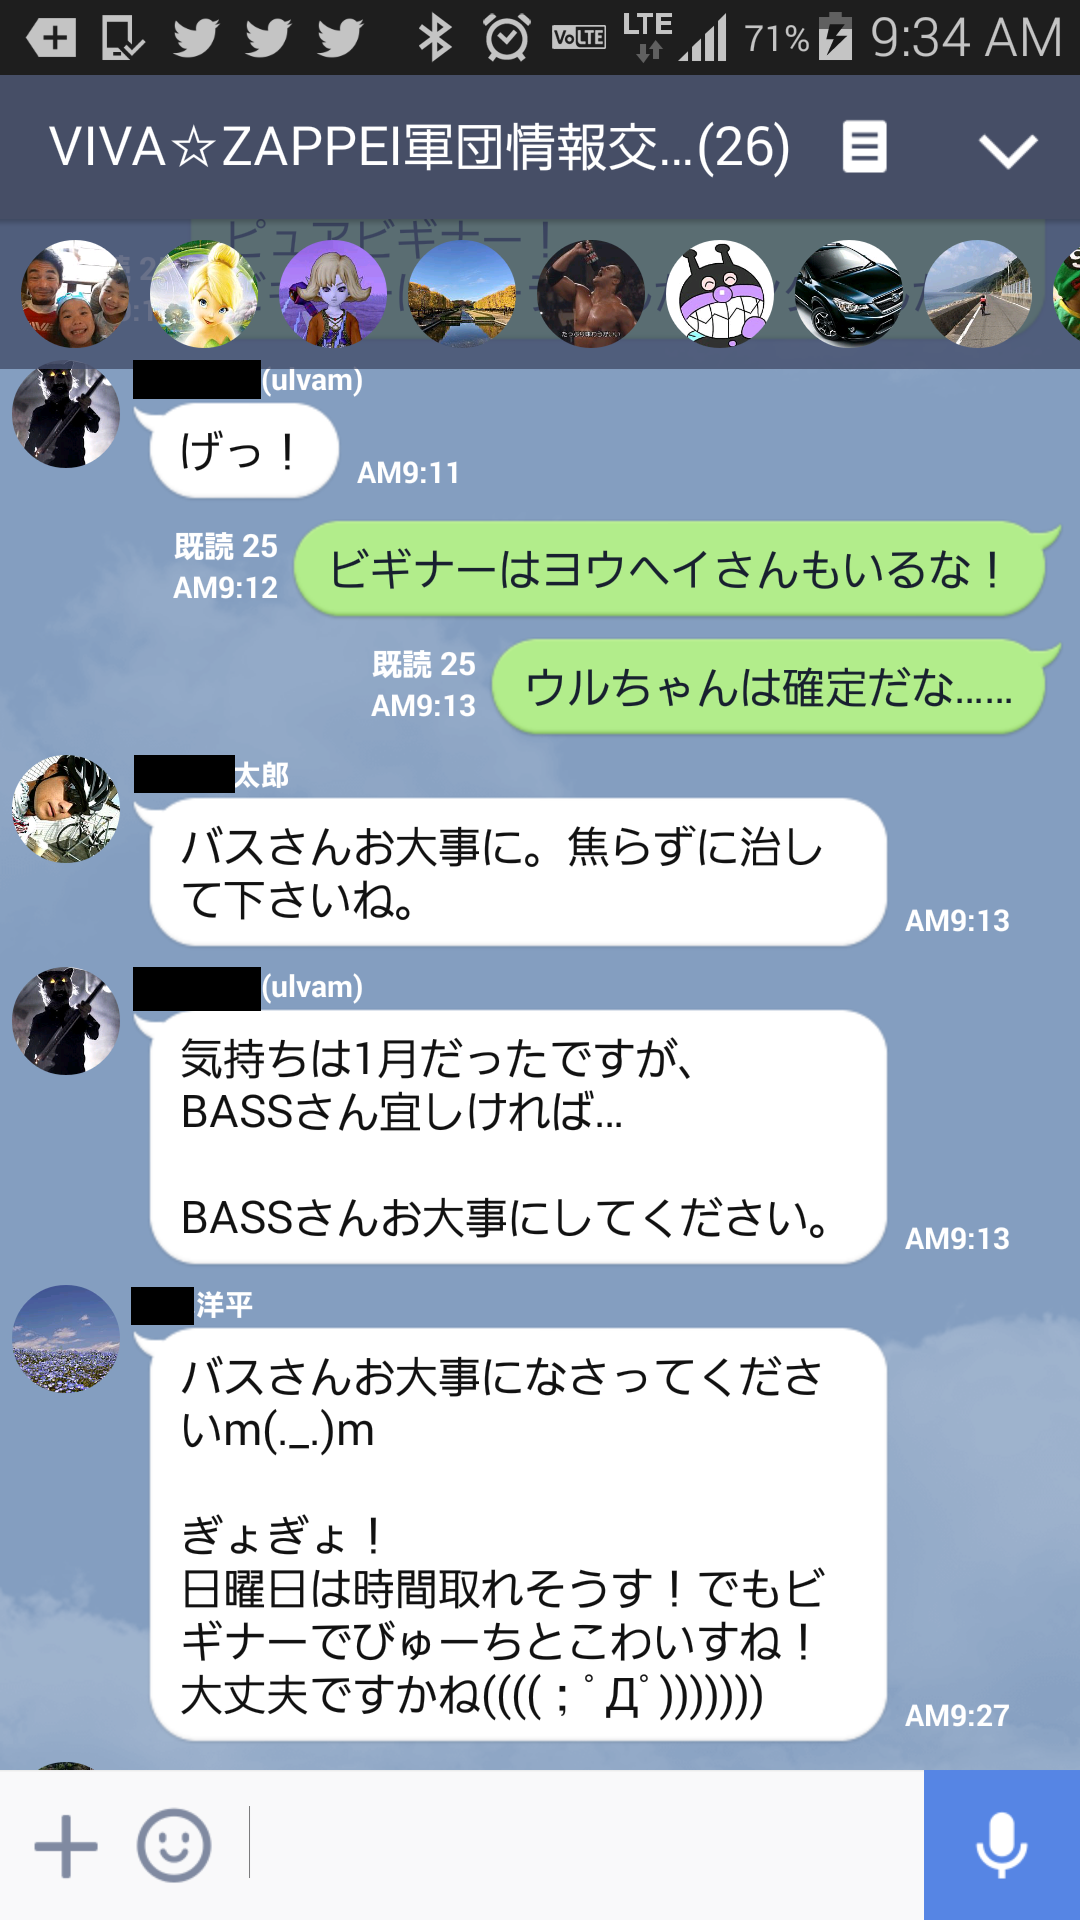 Screenshot_2015-12-14-09-34-12.png